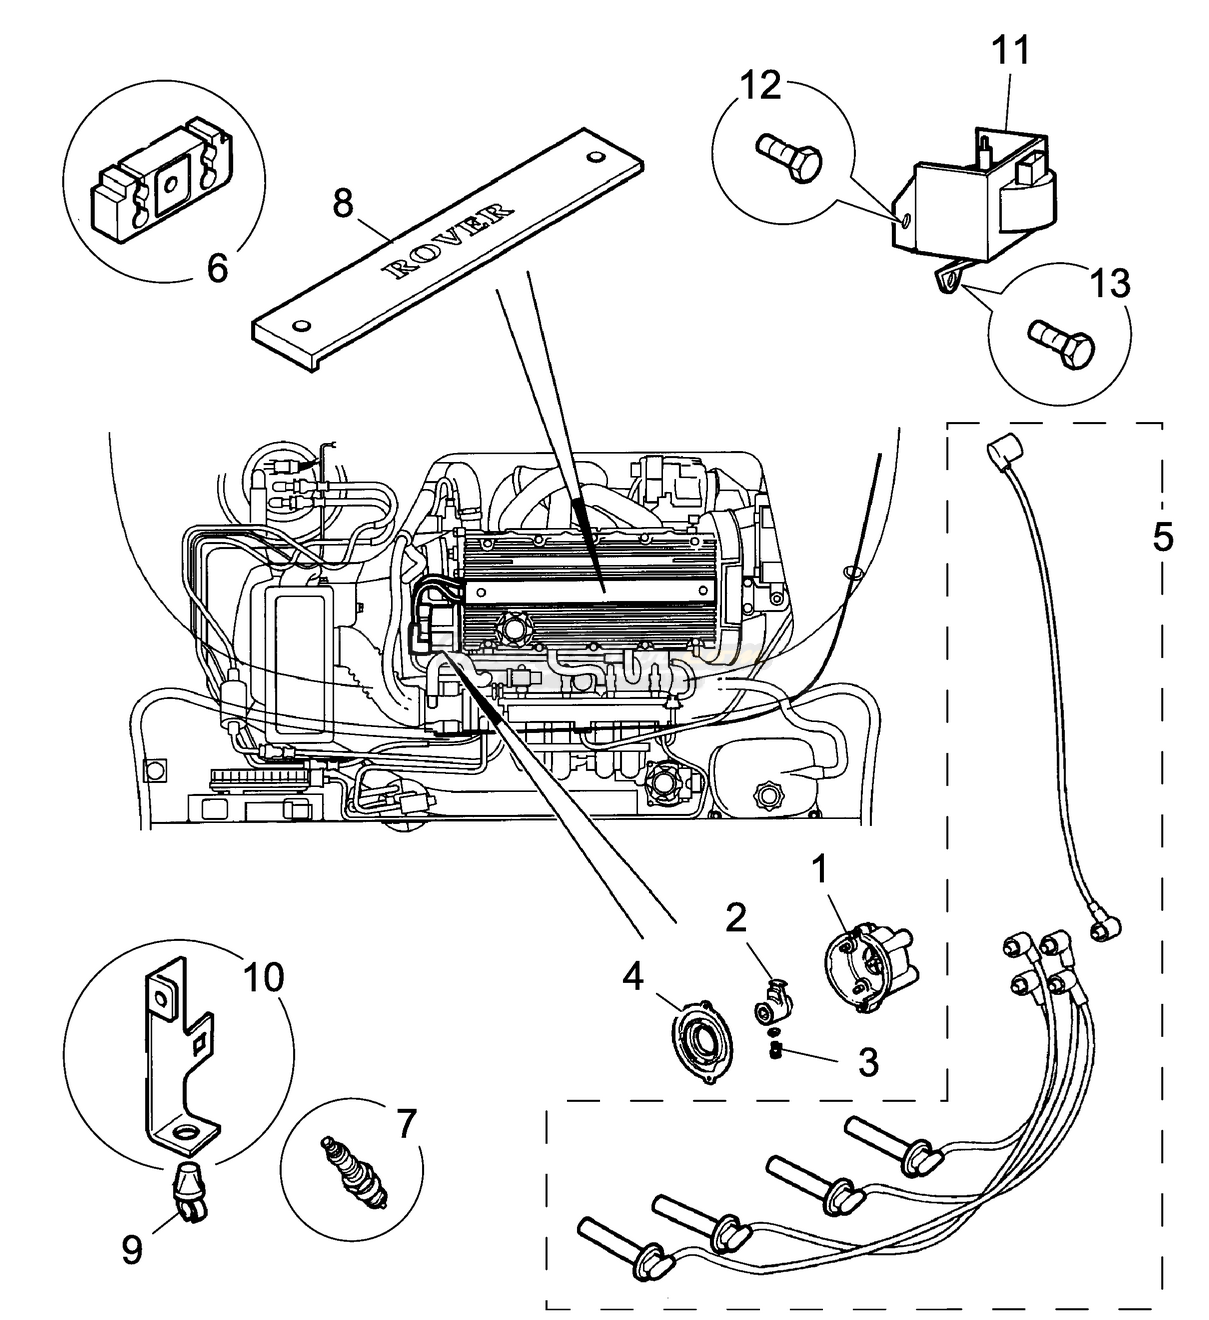 Ignition Components - Manual